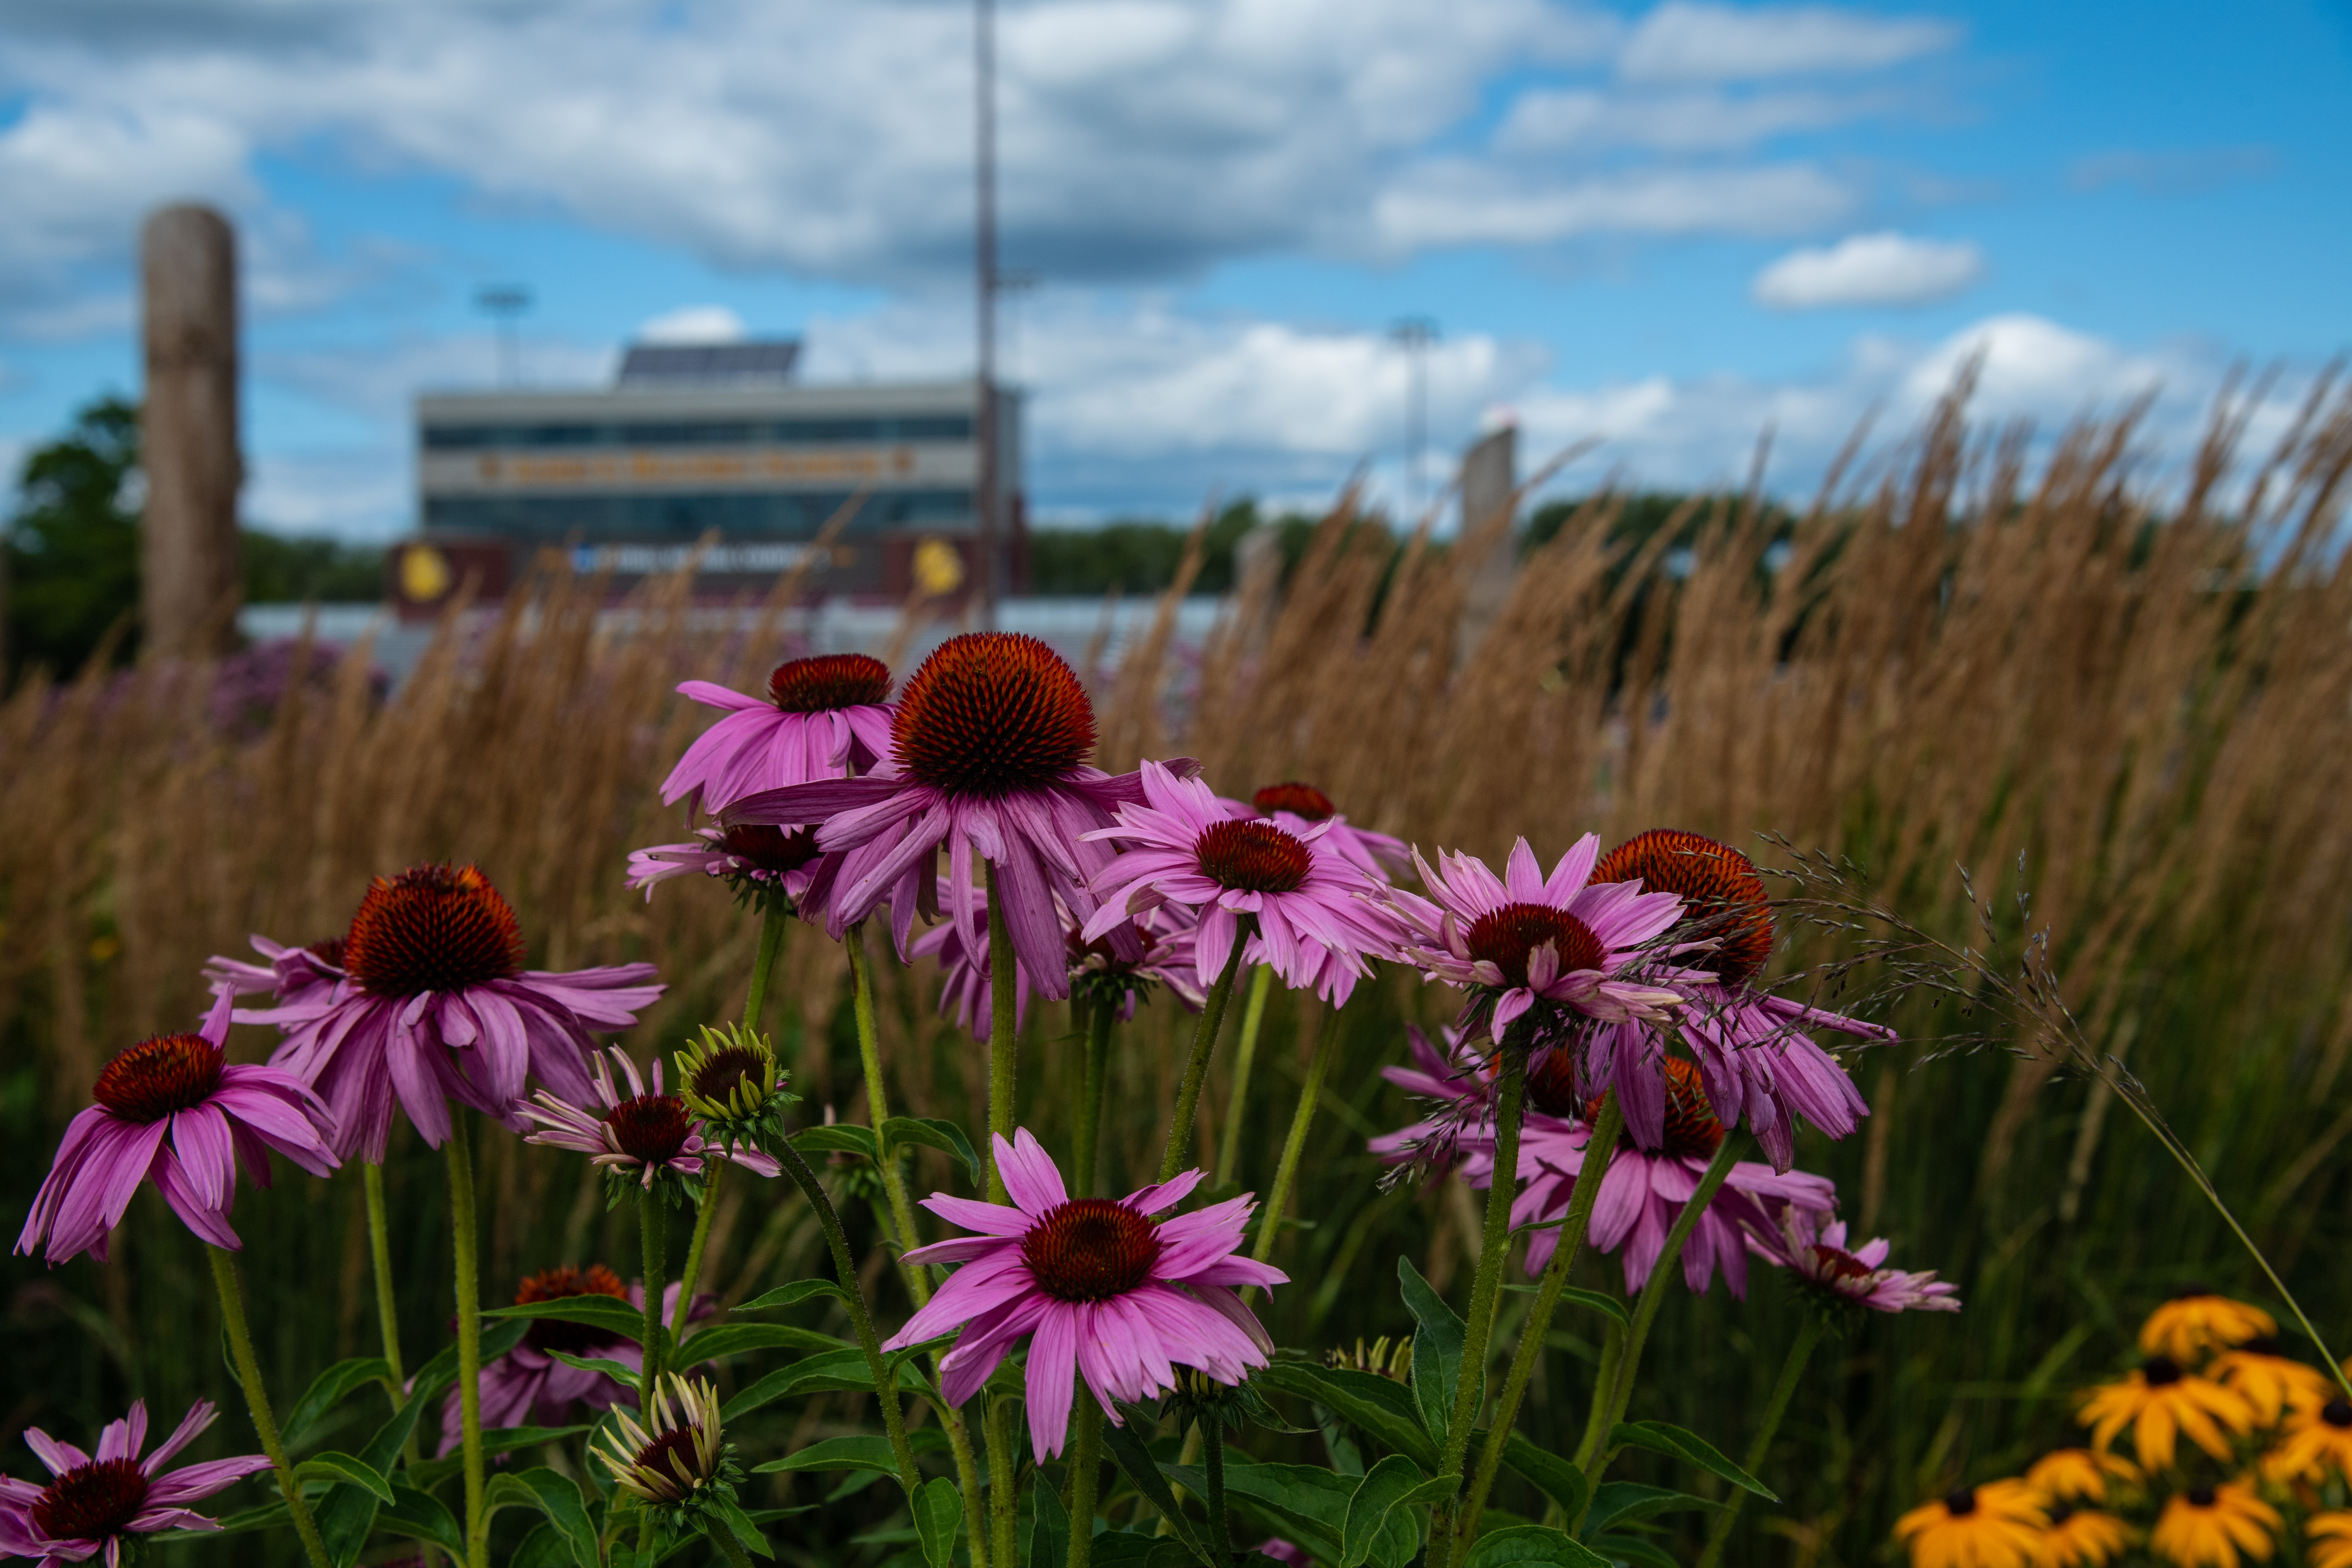 Malosky stadium as seen through a field of wildflowers